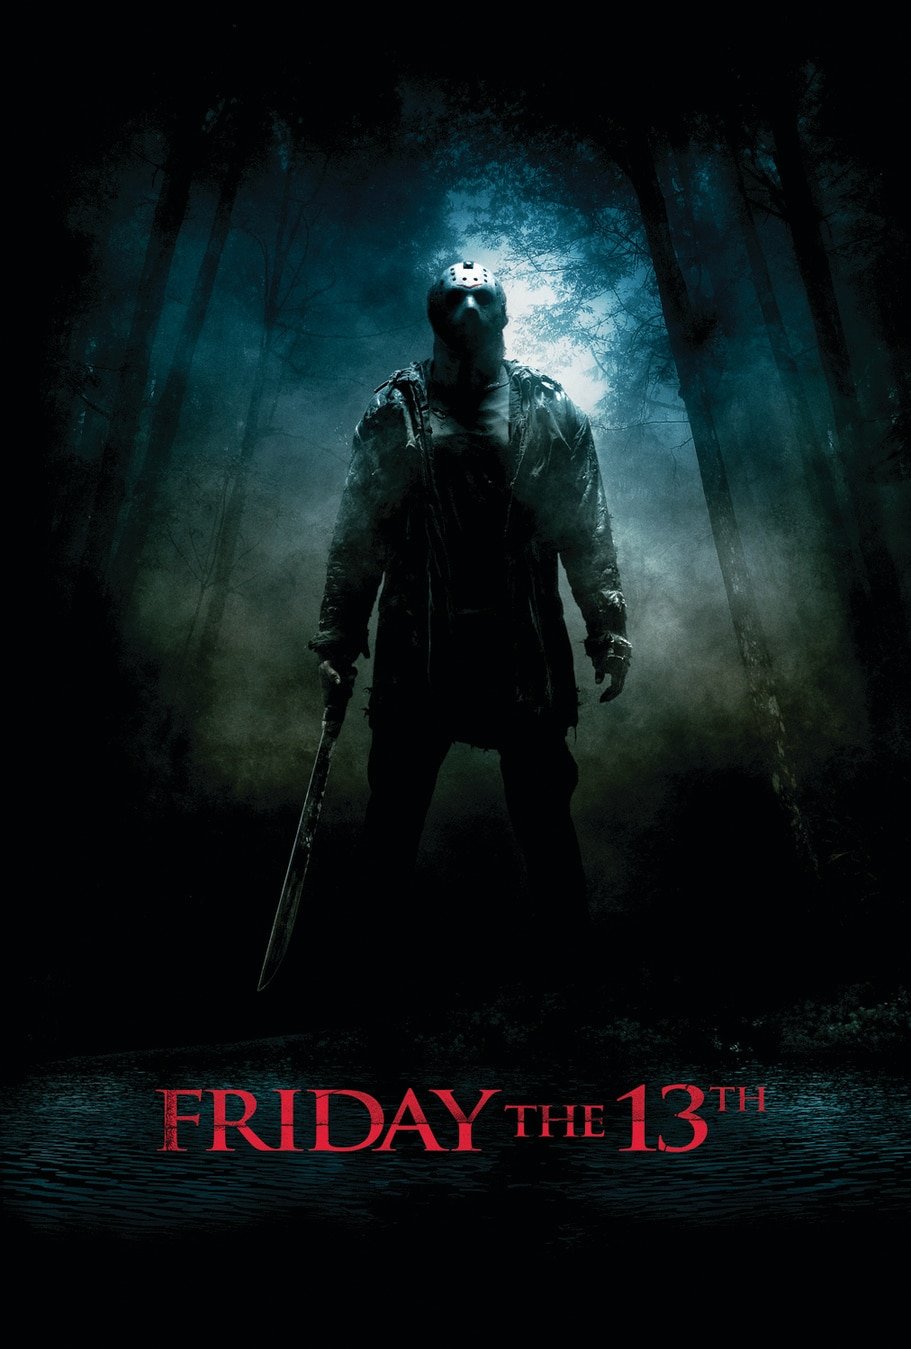 friday the 13th 2009 poster - Horror History: Marcus Nispel's FRIDAY THE 13TH Remake Was Released On This Day in 2009